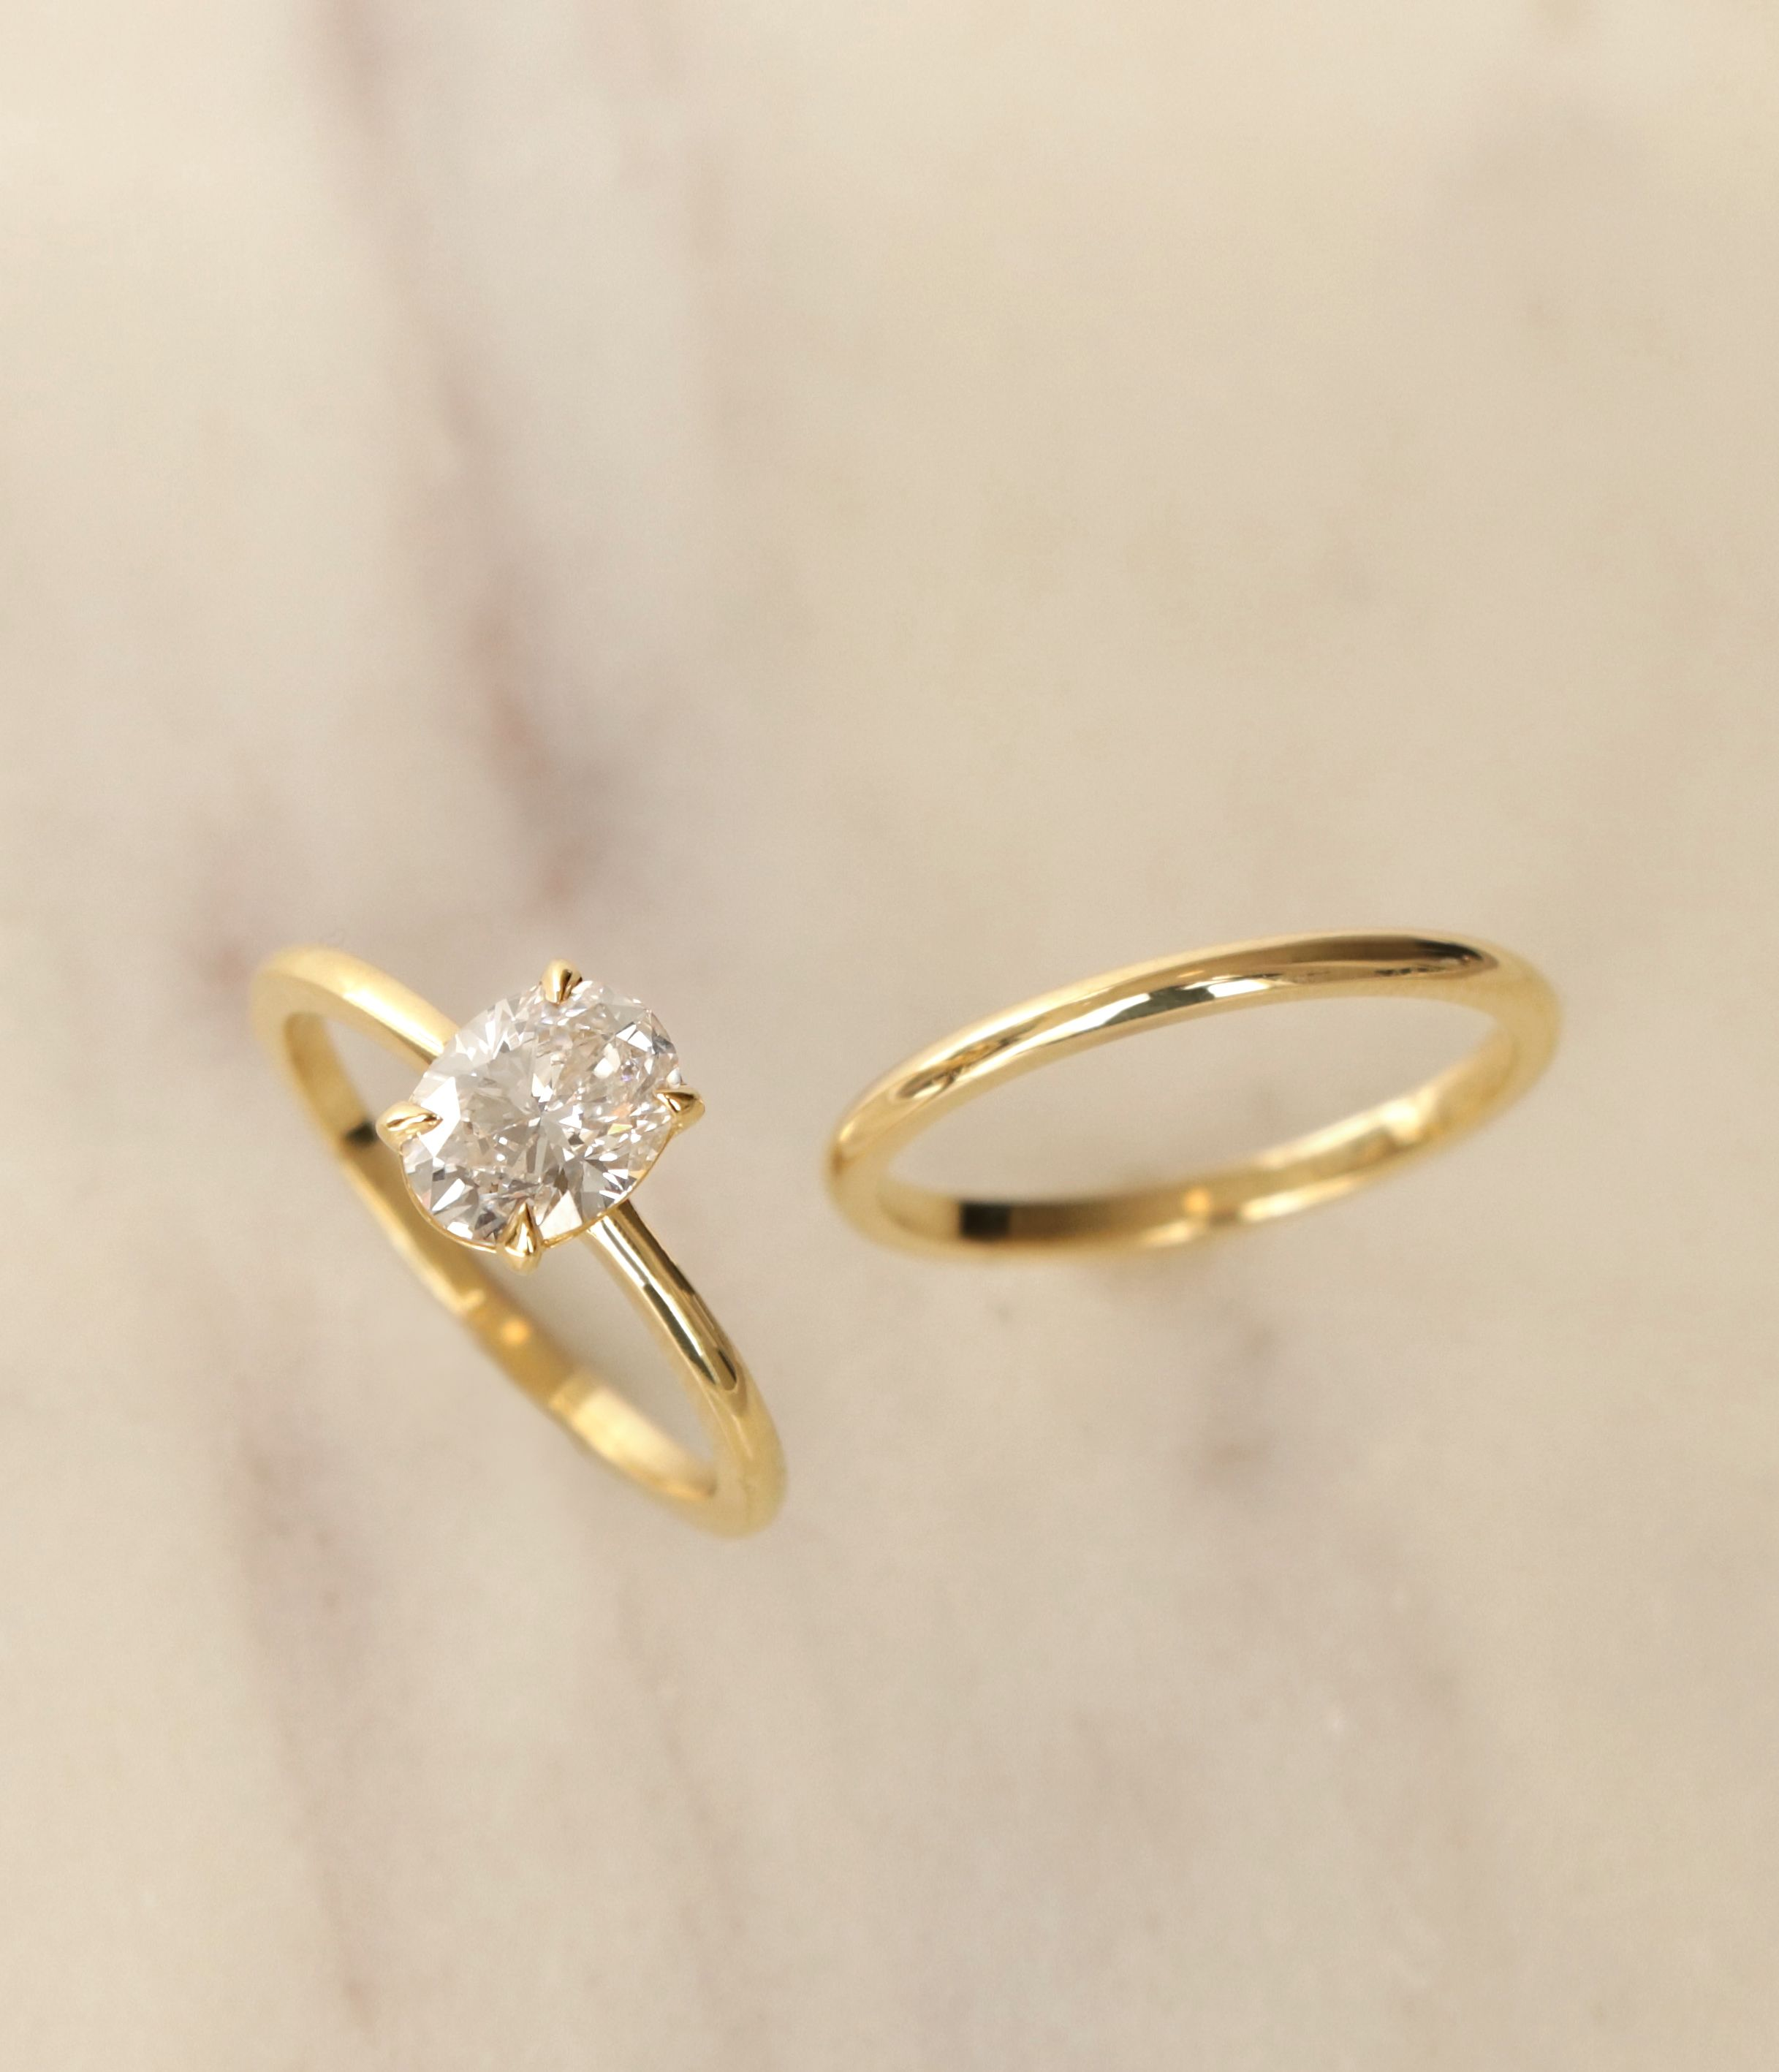 two engagement gold band ring ringset silver wedding shop sue and modern by diamond enagement lane contemporary rings